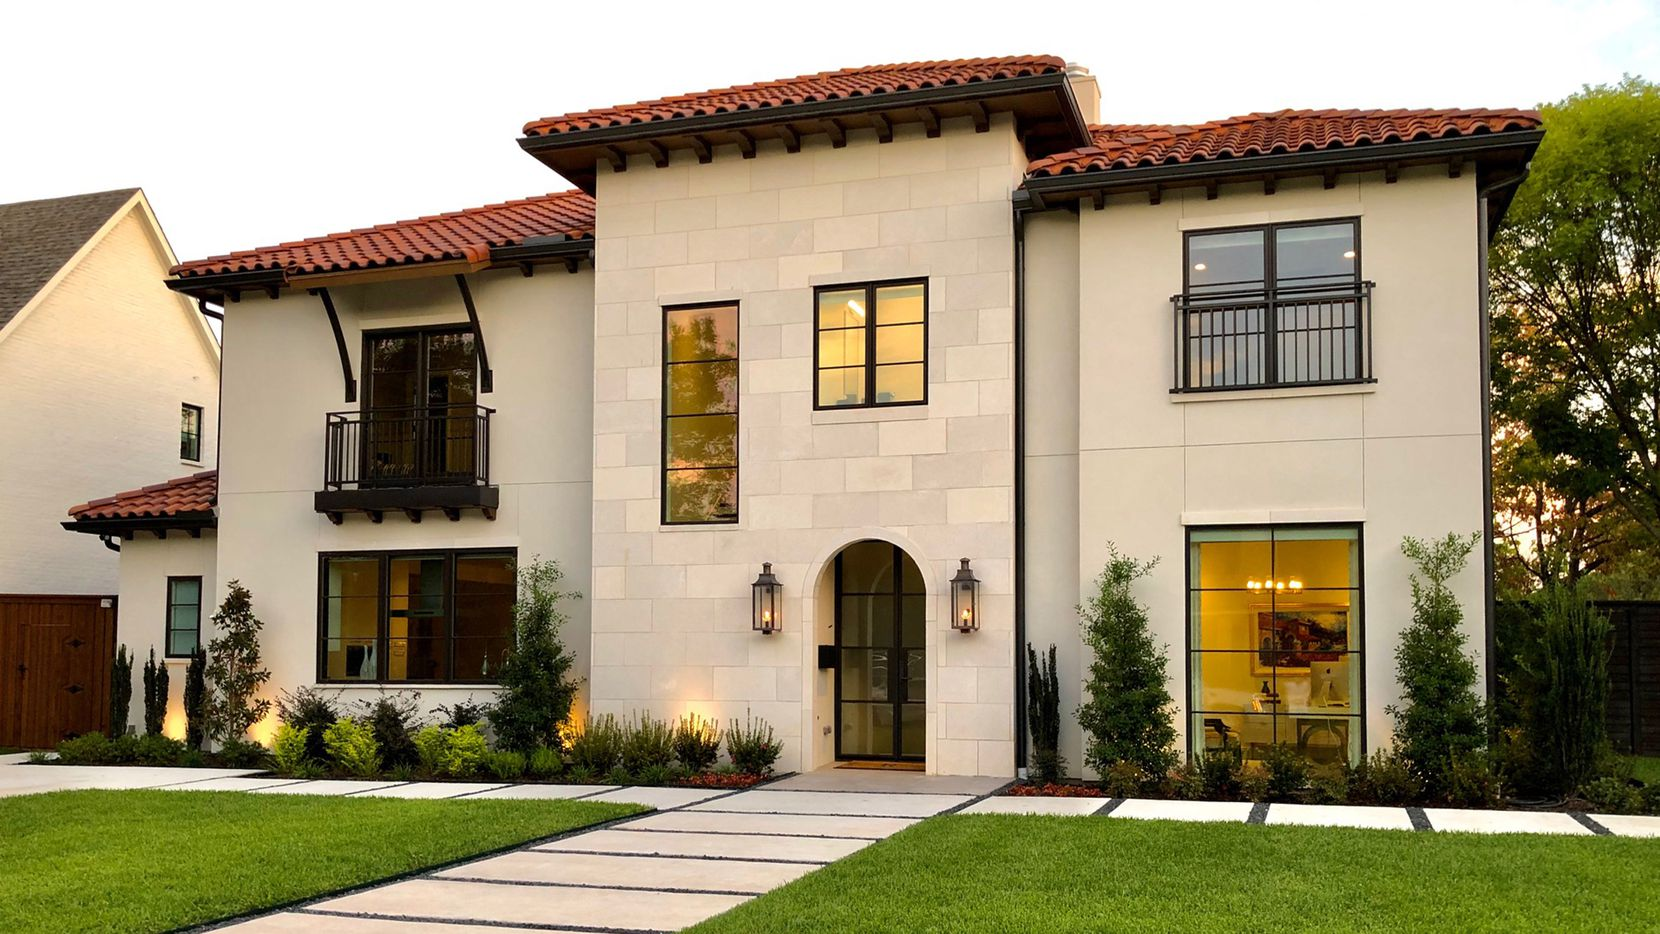 S&R Development recently completed this Preston Hollow corner-lot home three months ahead of schedule and within budget .